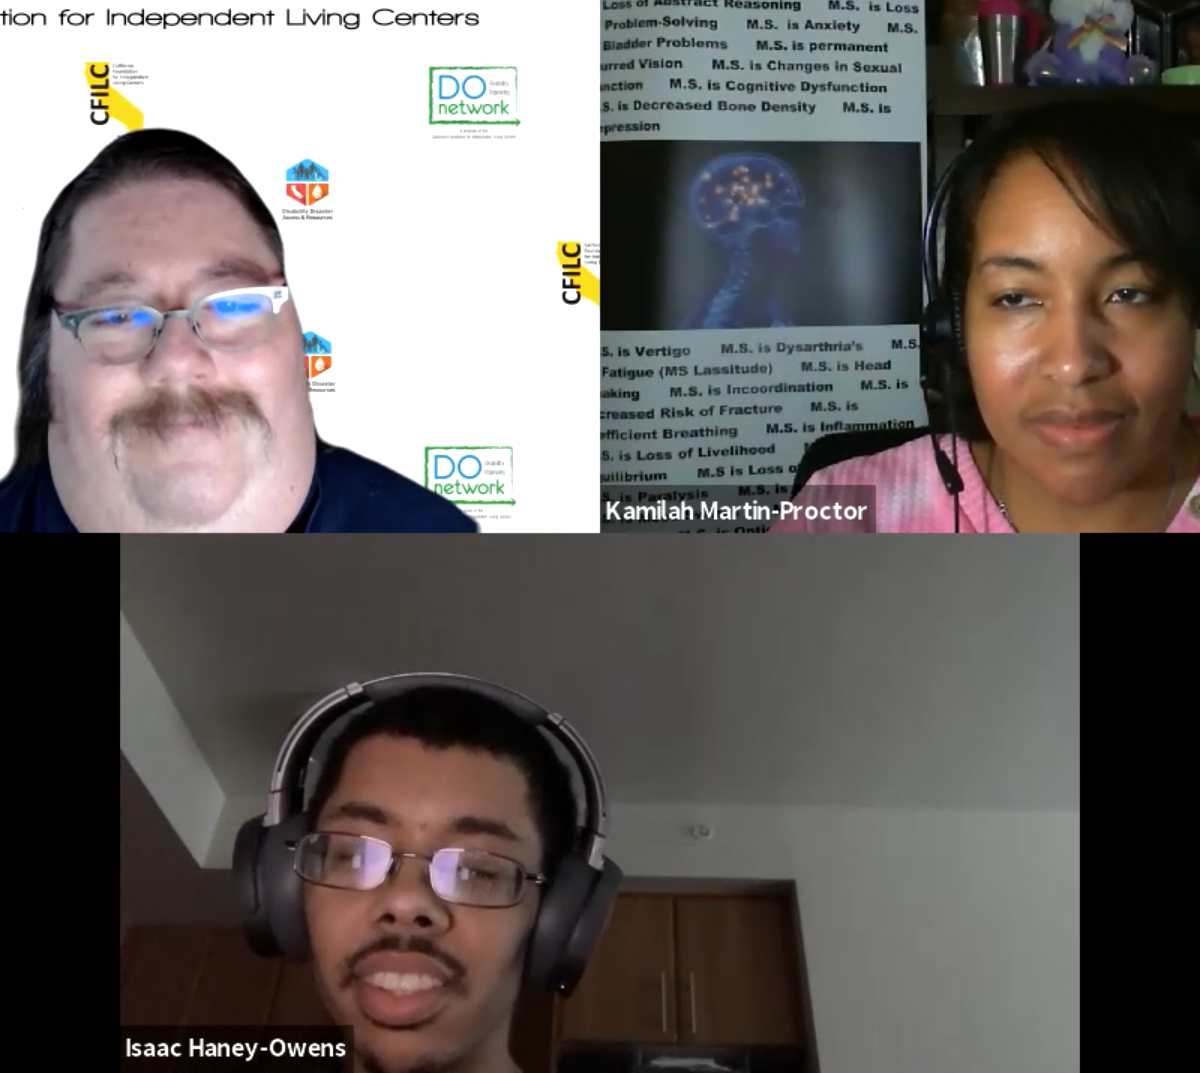 Three people with disabilities. Russel is a middle aged man at top left has a mustache and glasses, Kamila is on top right is a black middle aged woman wearing a headset. Isaac is a young adult man below wearing headphones and glasses with facial hair. Justin Tsang called in.